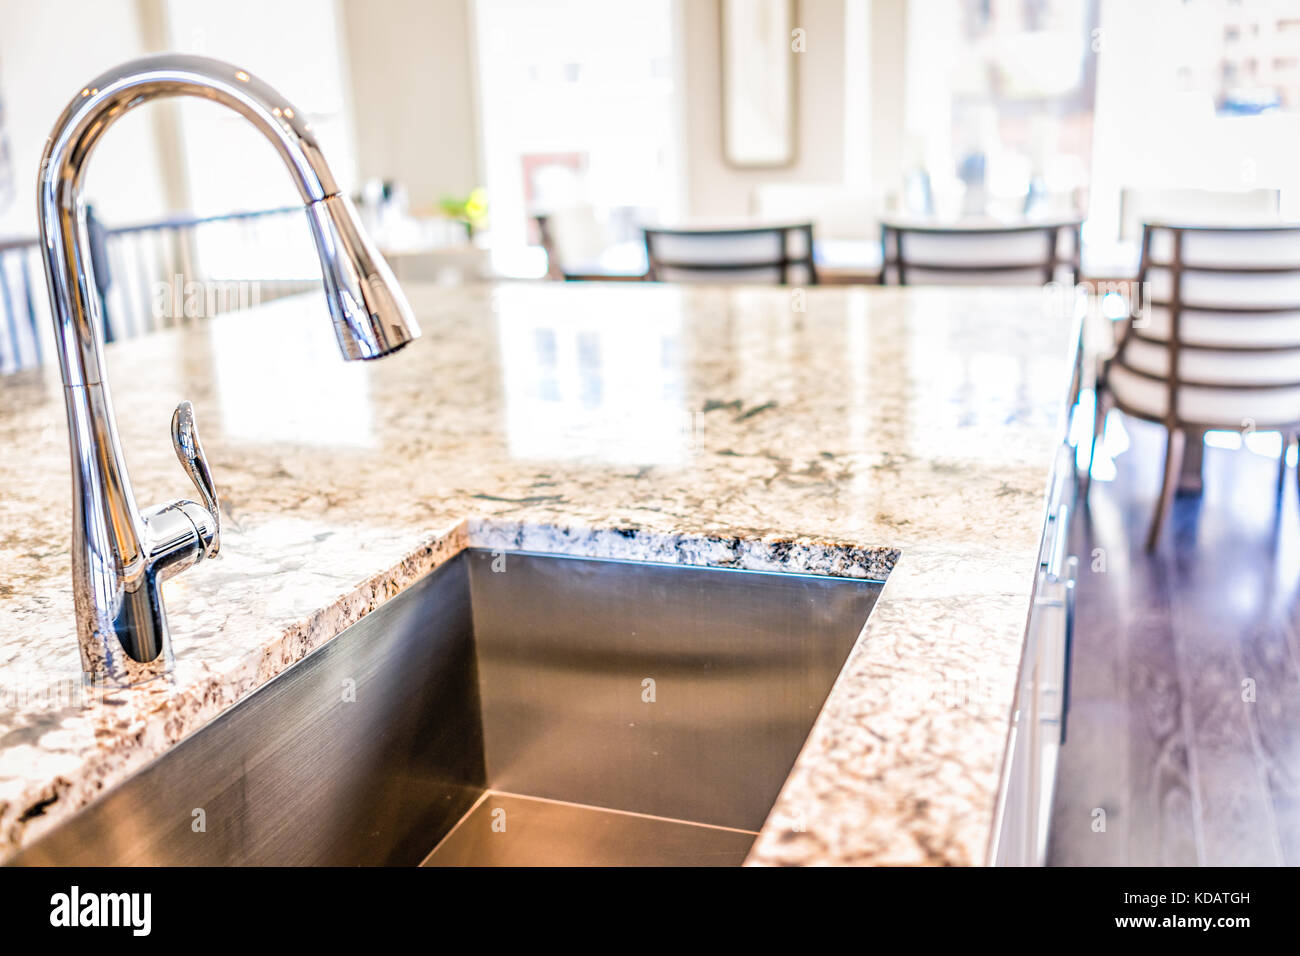 Sink Tap Modell : New modern faucet and kitchen room sink closeup with island